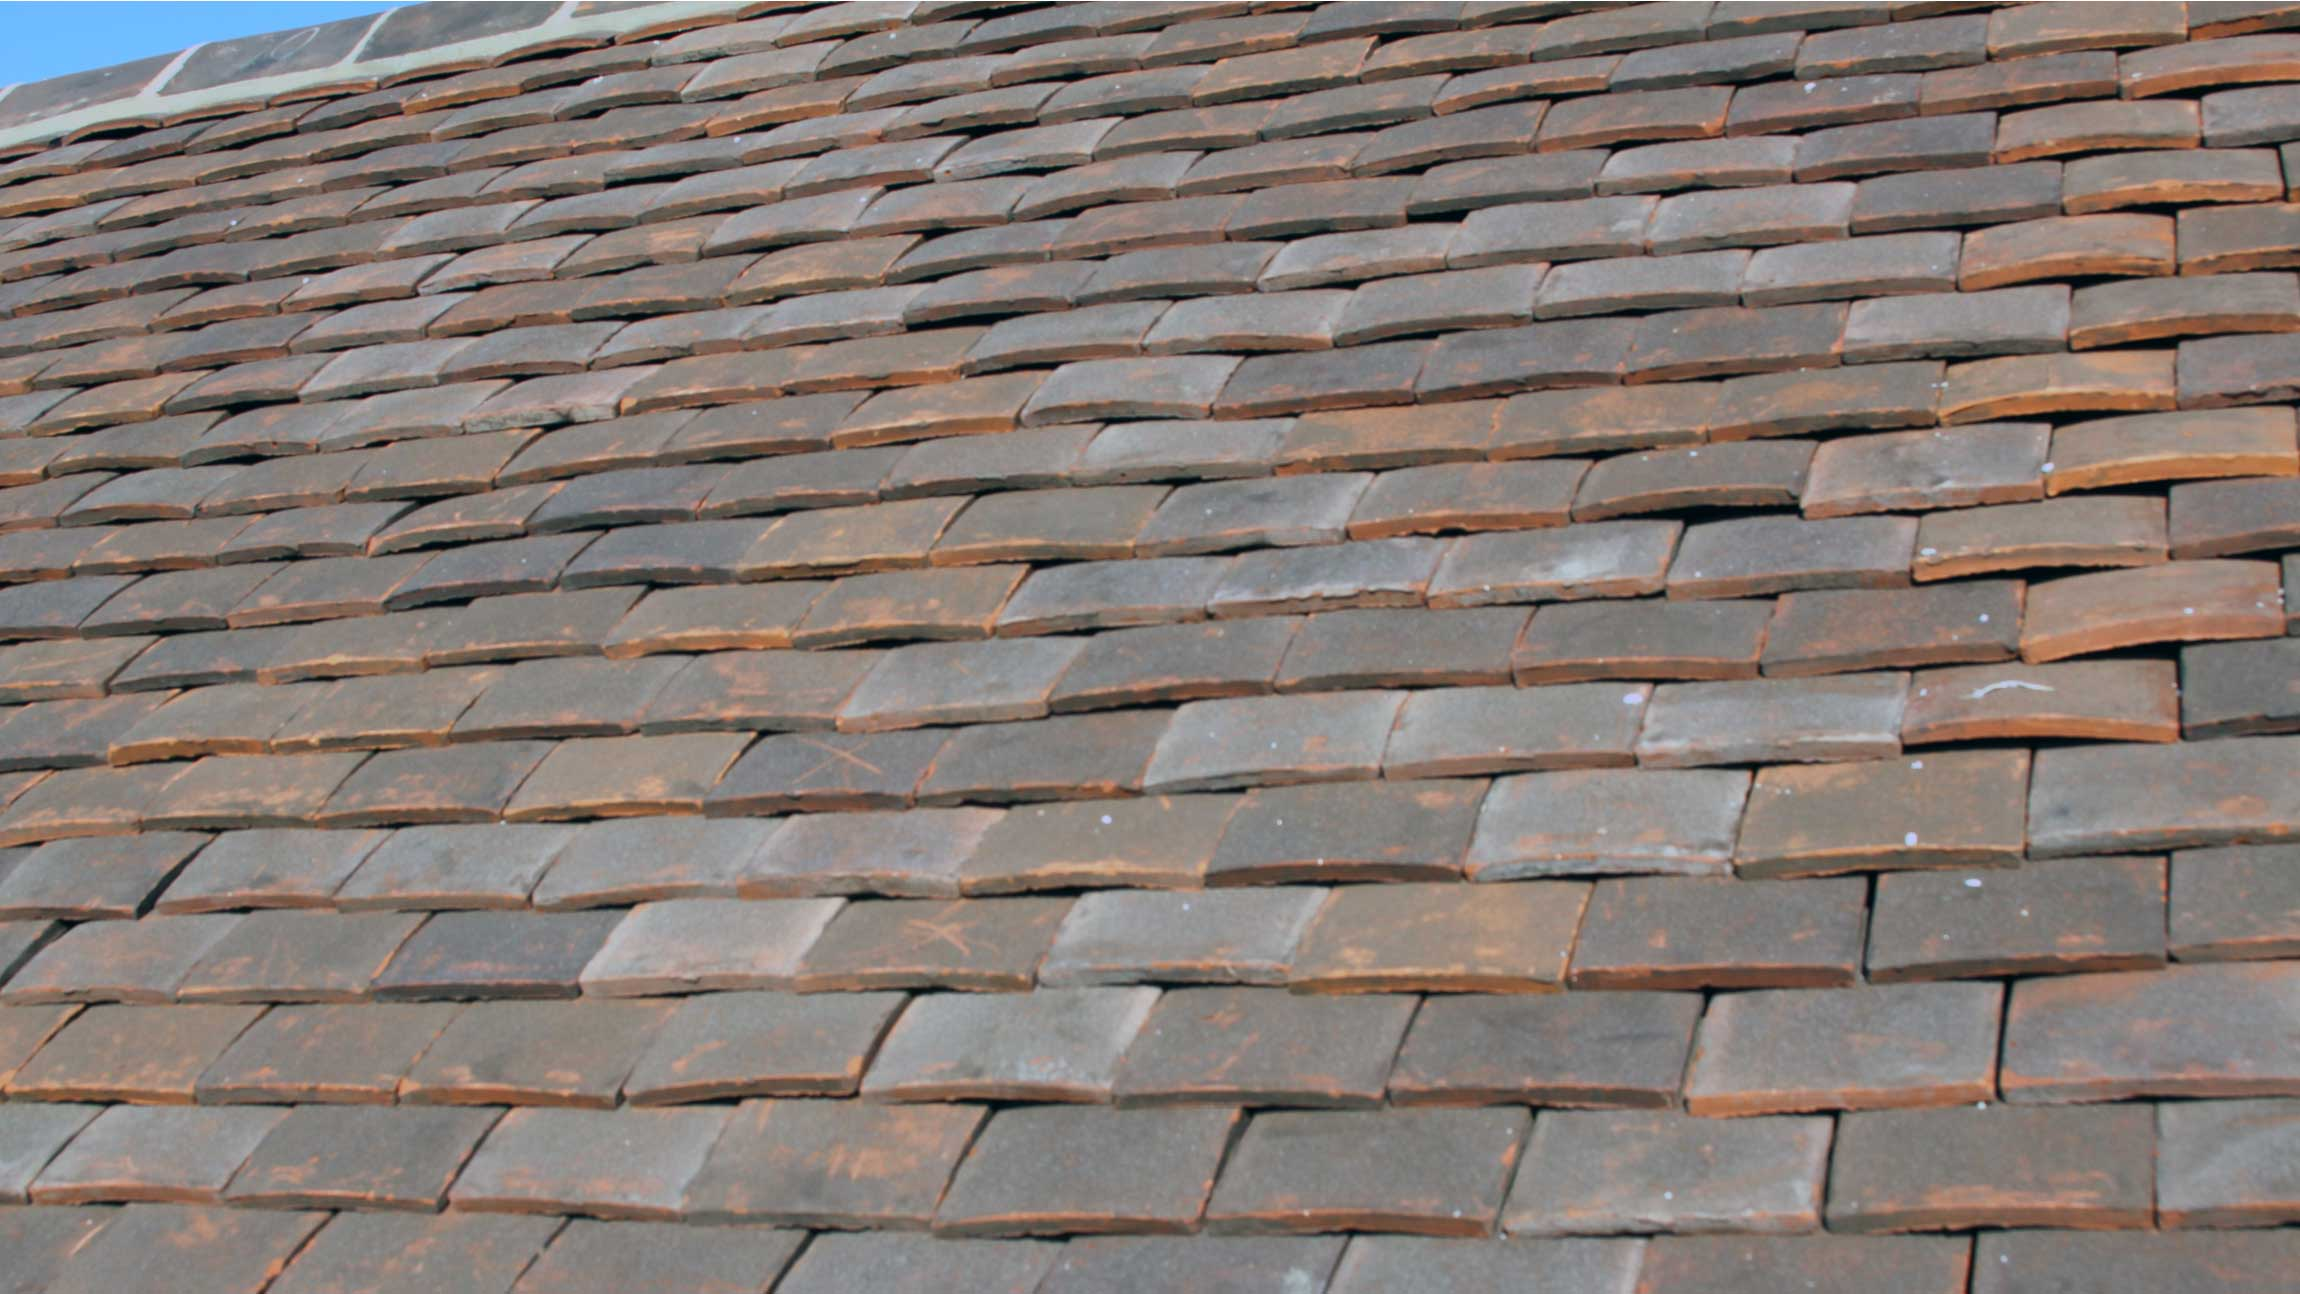 Marley eternit plain tiles western counties roofing for Roofing product